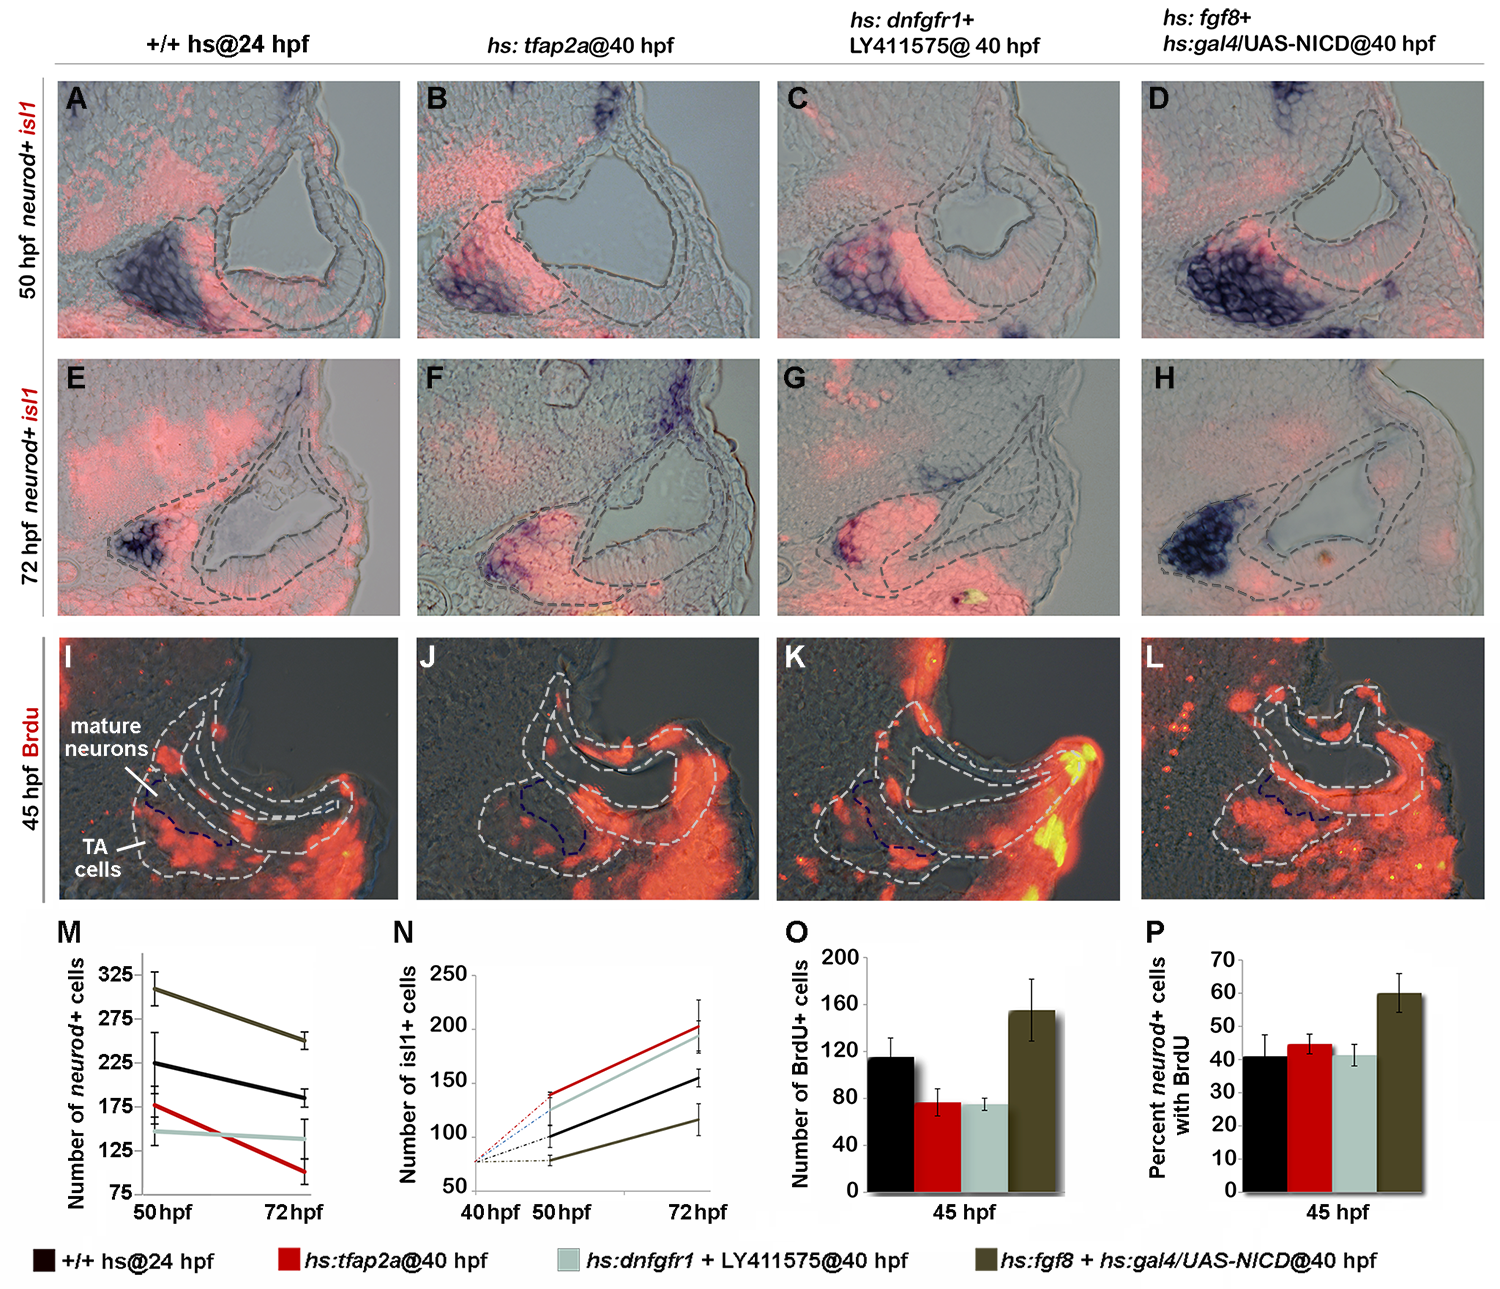 Tfap2a regulates development of TA cells independent of earlier stages.